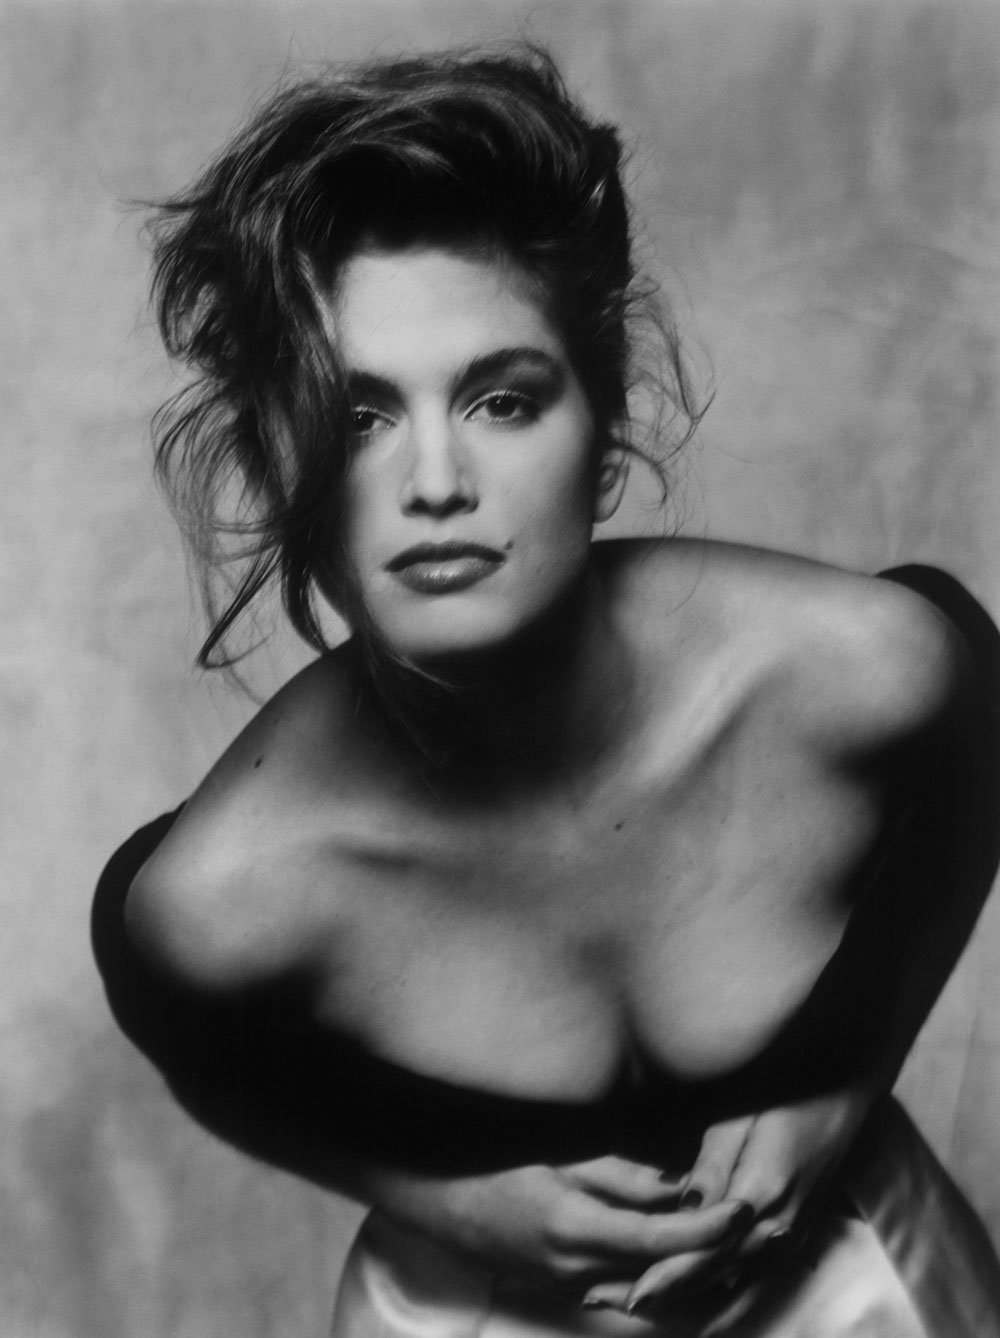 Cindy Crawford - Wallpaper Colection